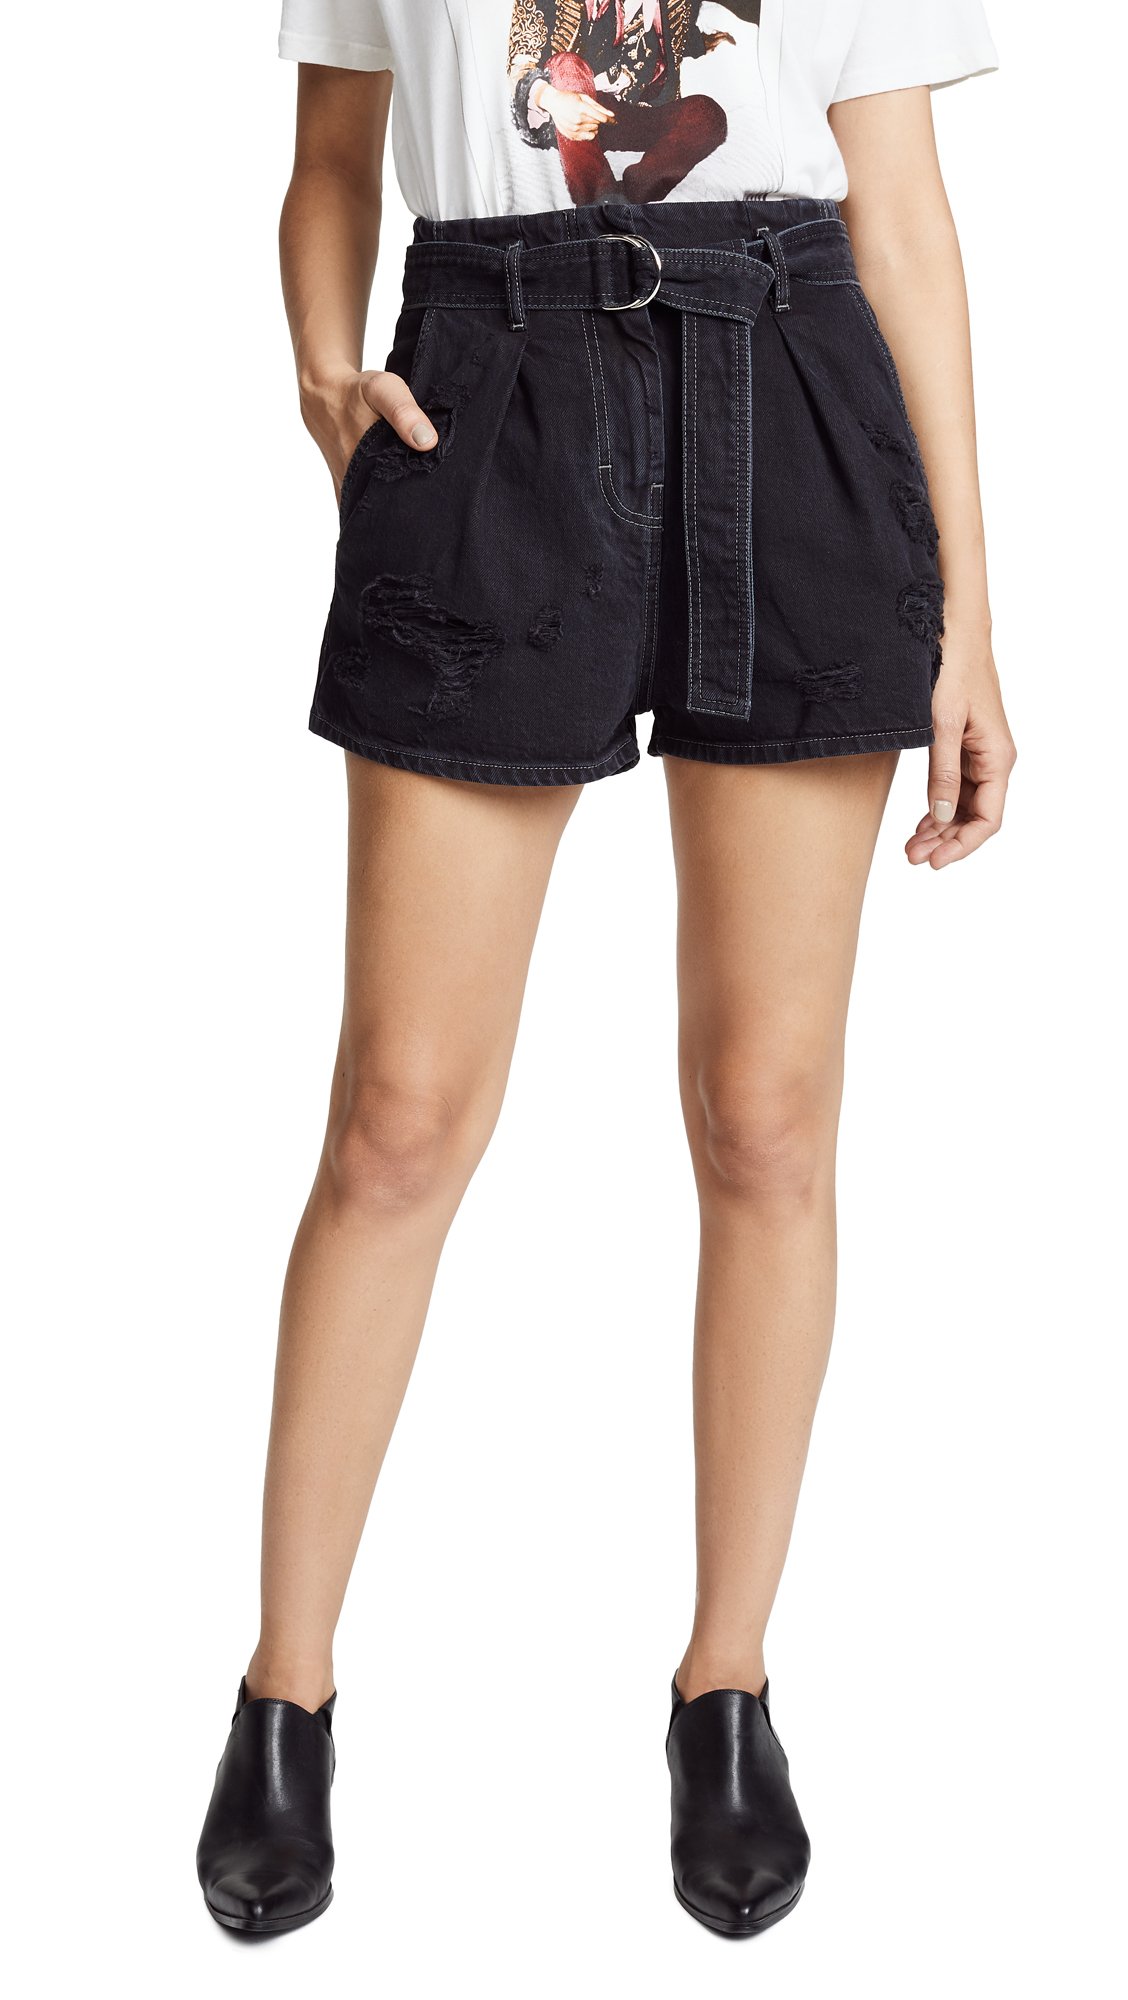 IRO.JEANS Iro. Jeans Rosa Shorts in Black Washed Grey